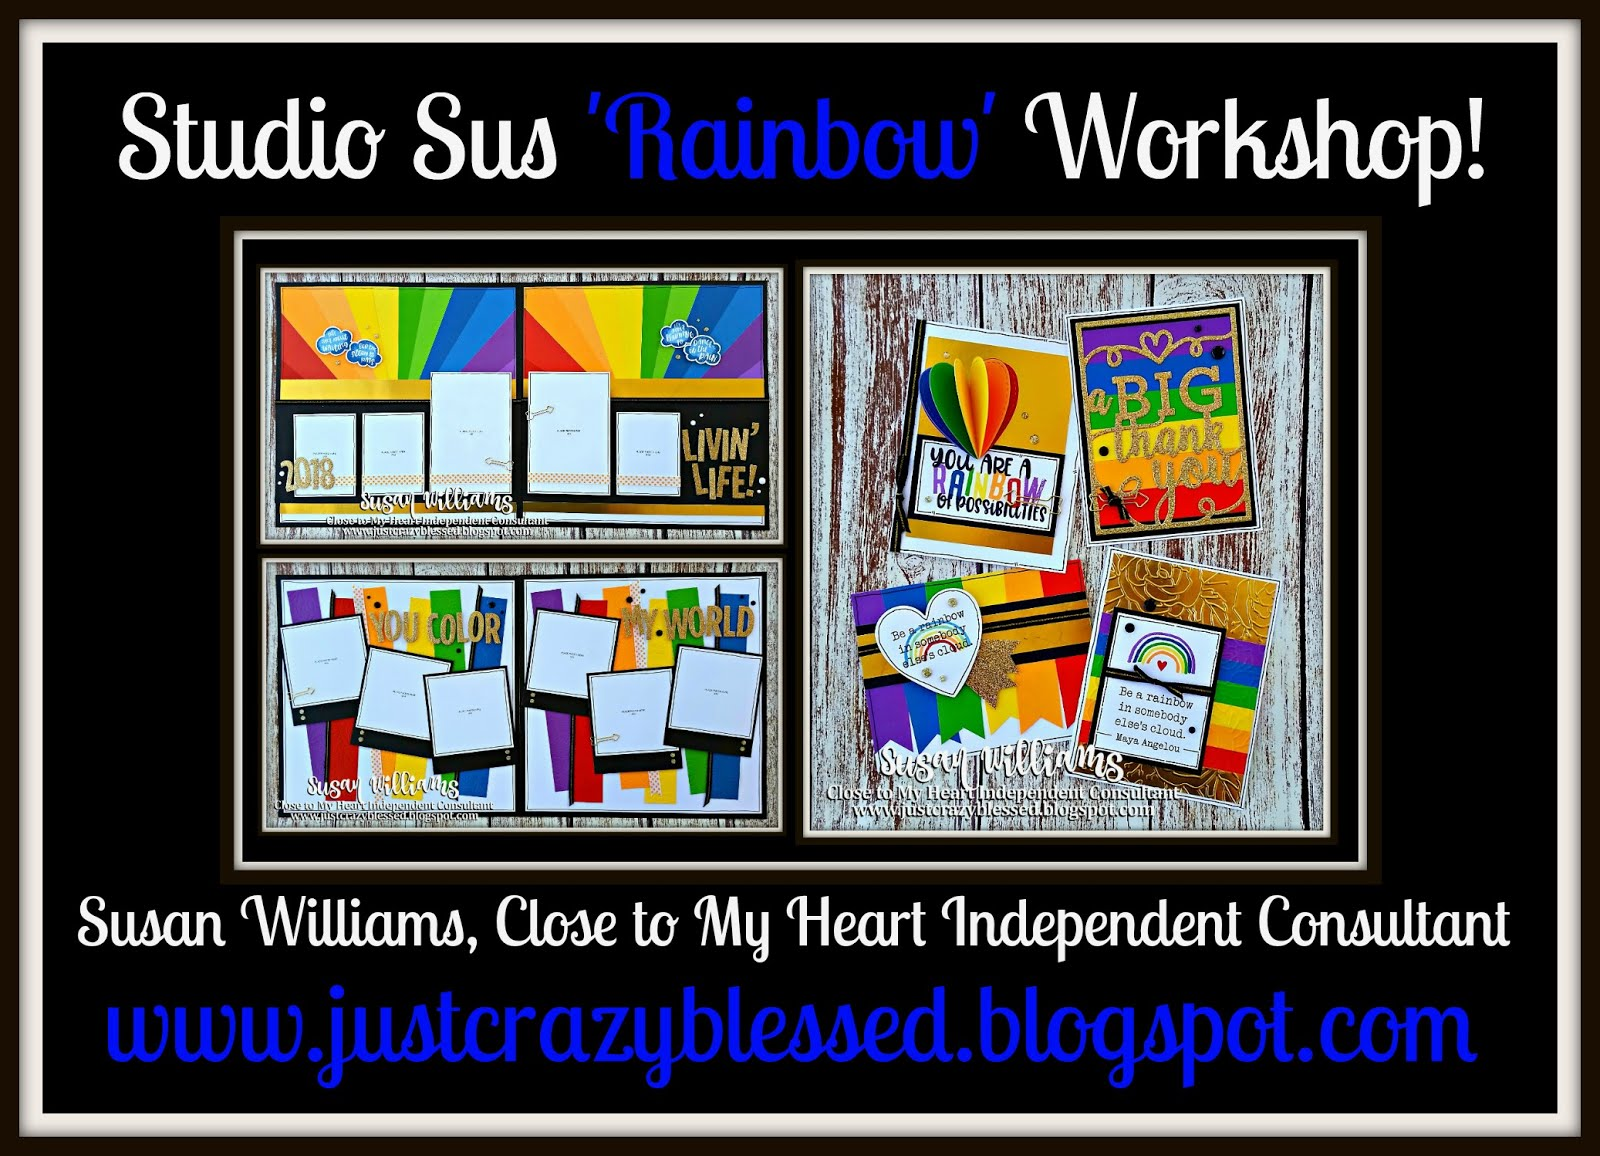 'Rainbow' Workshop!